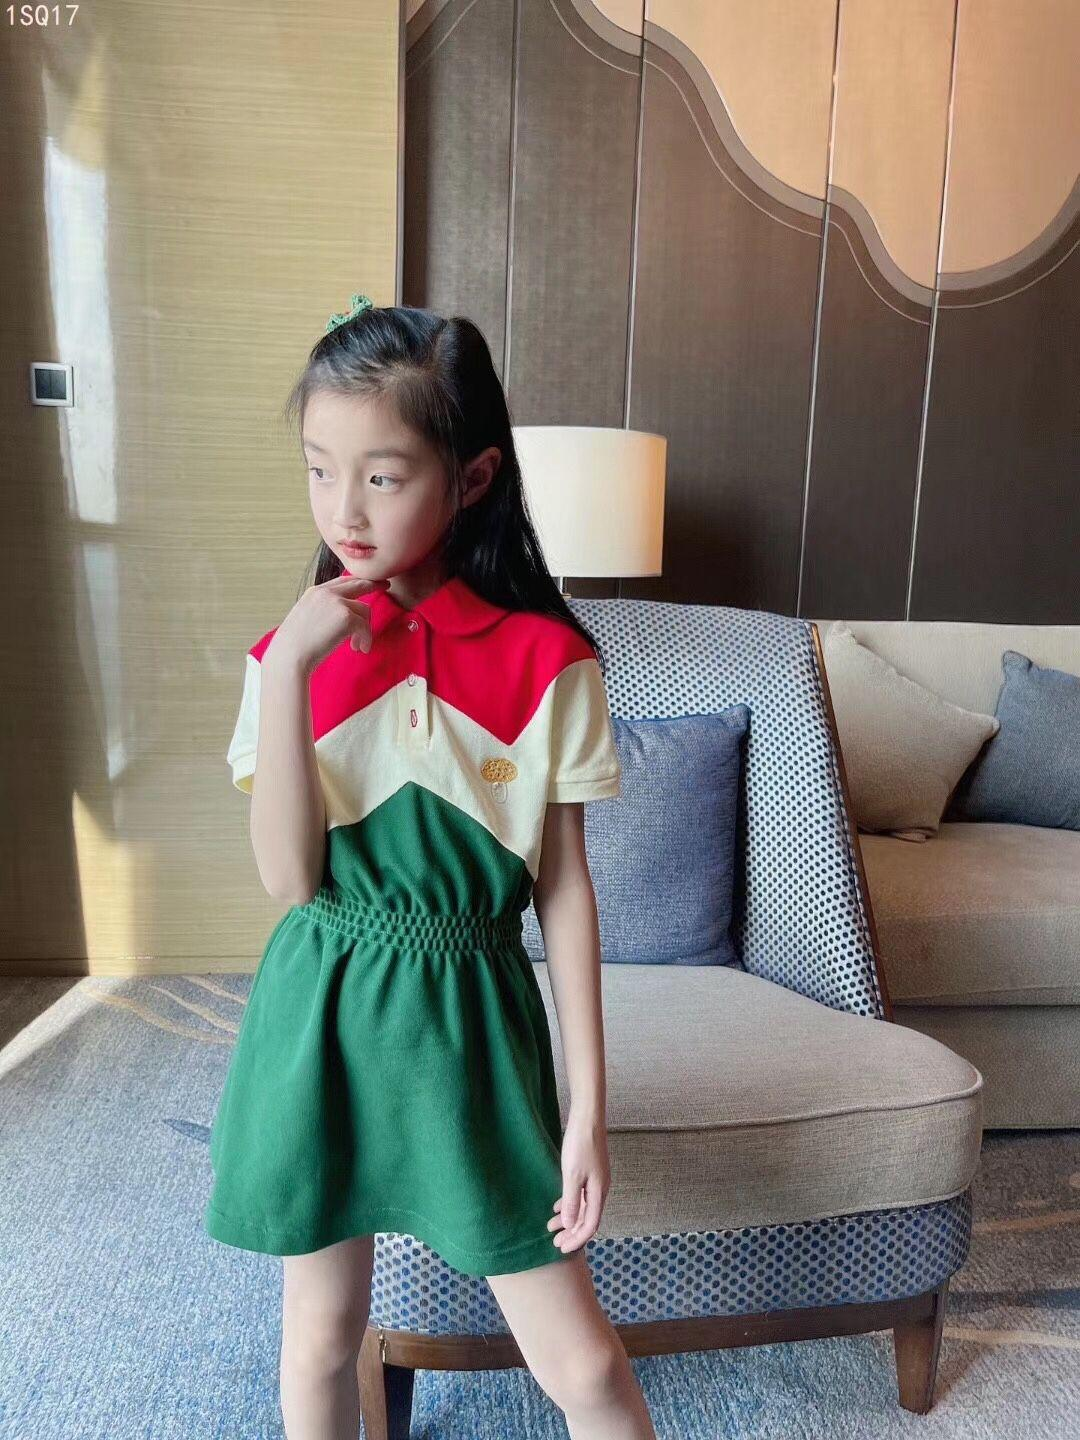 2021 free shipping high quality Baby Girls Summer Dress Pure Cotton Polo Dresses Children Kids Short-sleeved Clothes